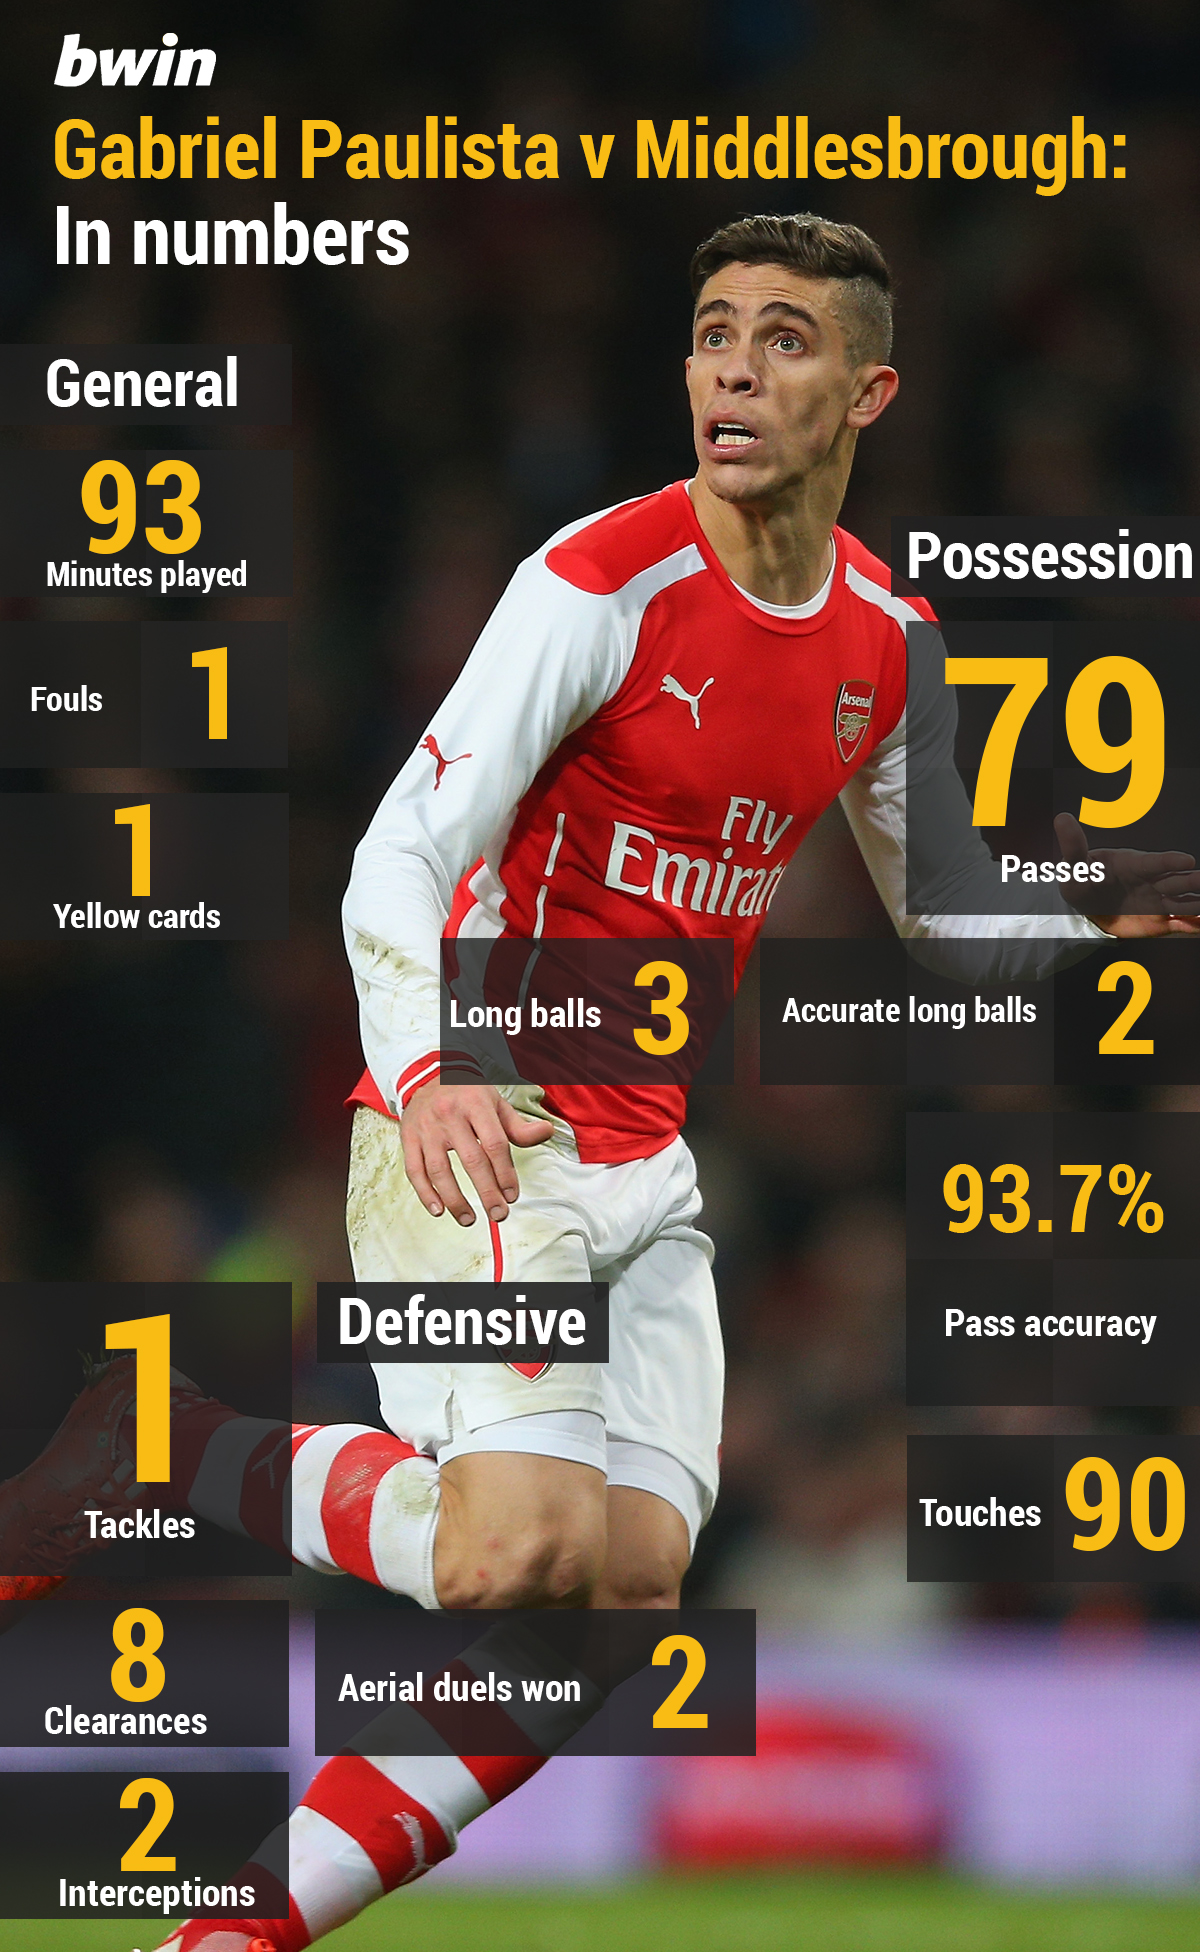 The debut of Arsenal defender Gabriel Paulista in numbers